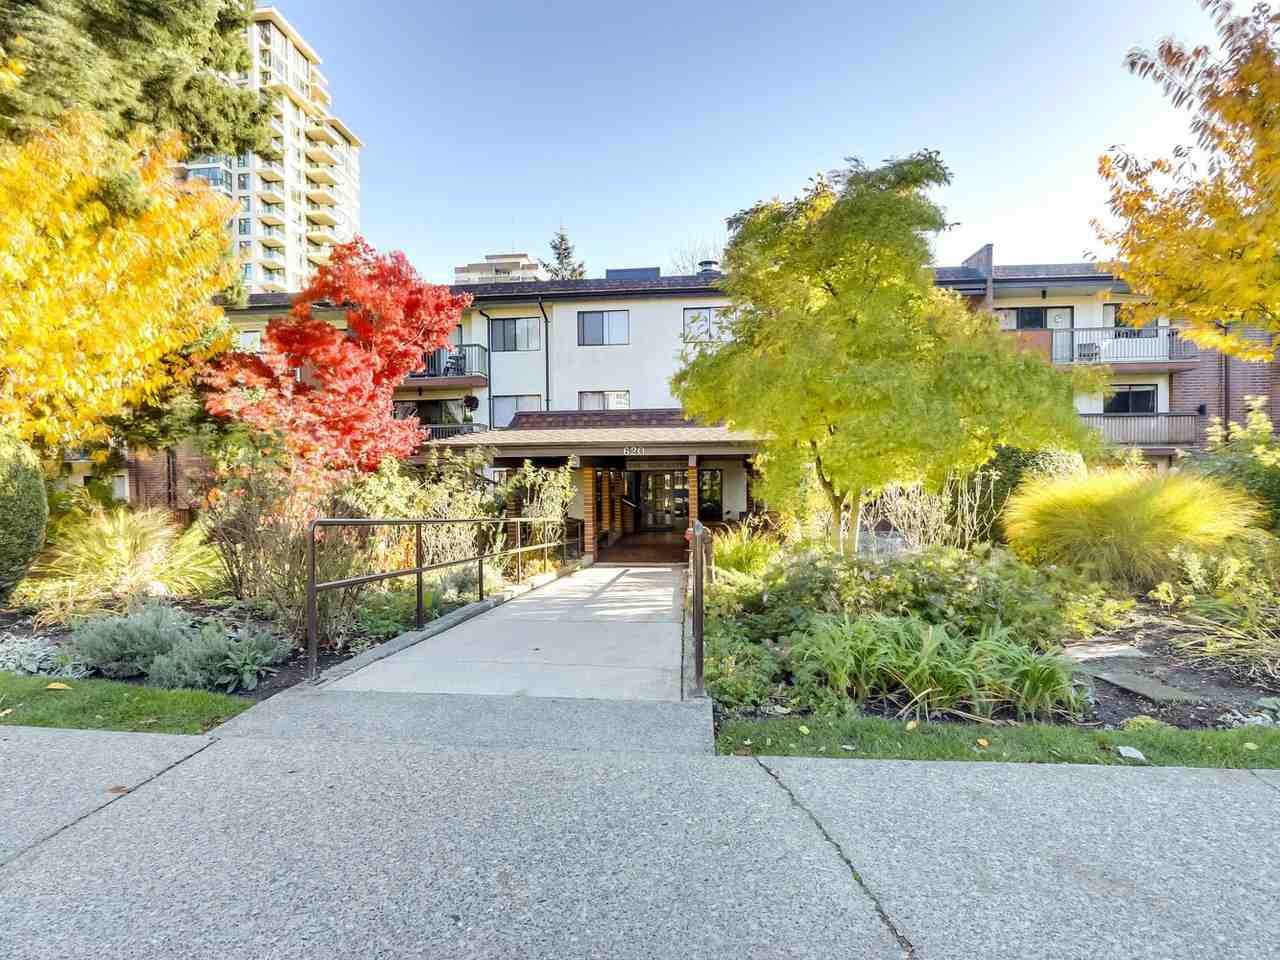 """Main Photo: 111 620 EIGHTH Avenue in New Westminster: Uptown NW Condo for sale in """"THE DONCASTER"""" : MLS®# R2516267"""